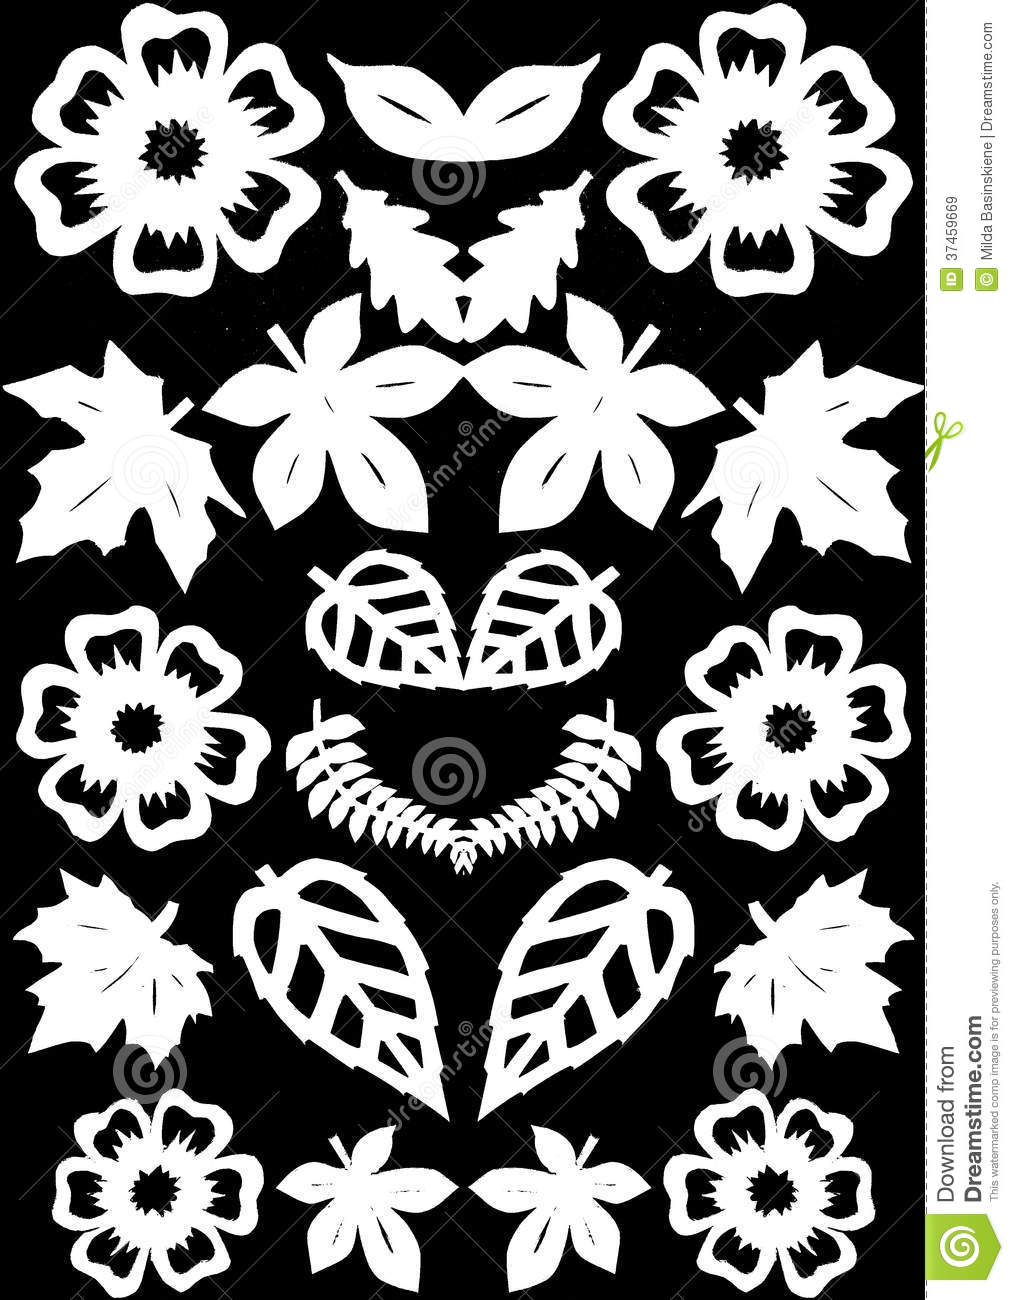 Flowers And Leafs Pattern Paper Cutting Stock Illustration